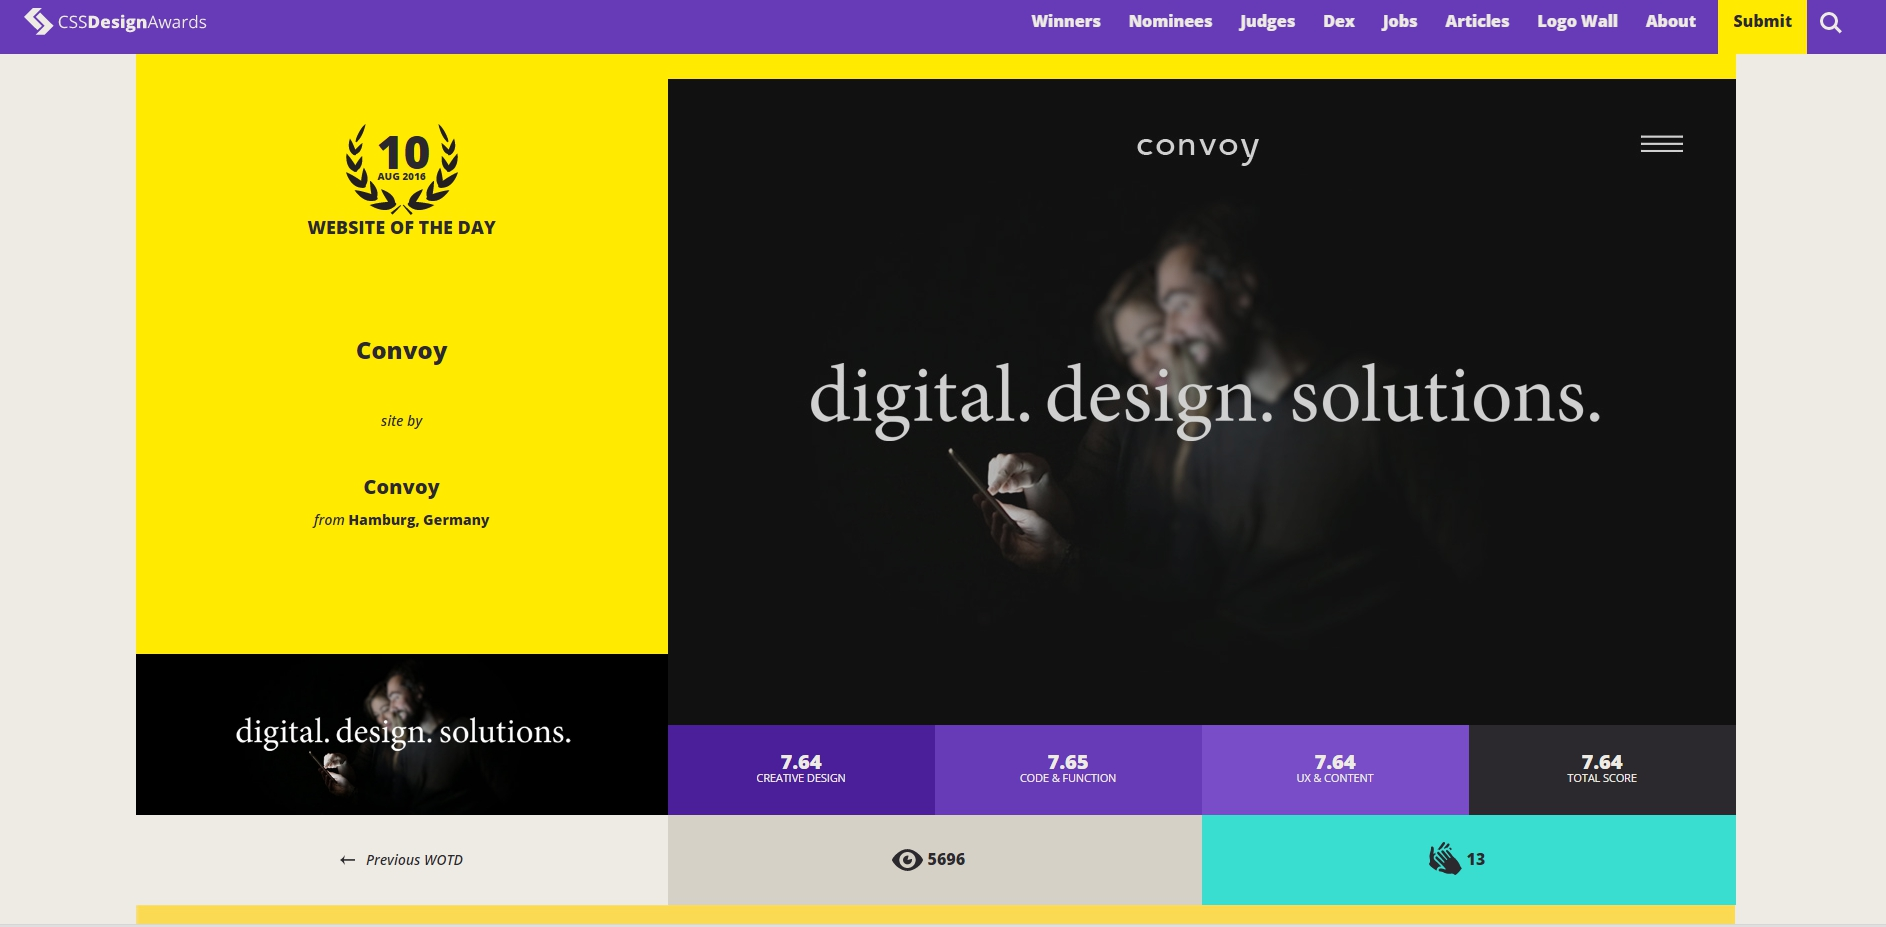 CSS Design Awards - Website Awards & Inspiration - CSS Gallery - CSSDA - Google Chrome